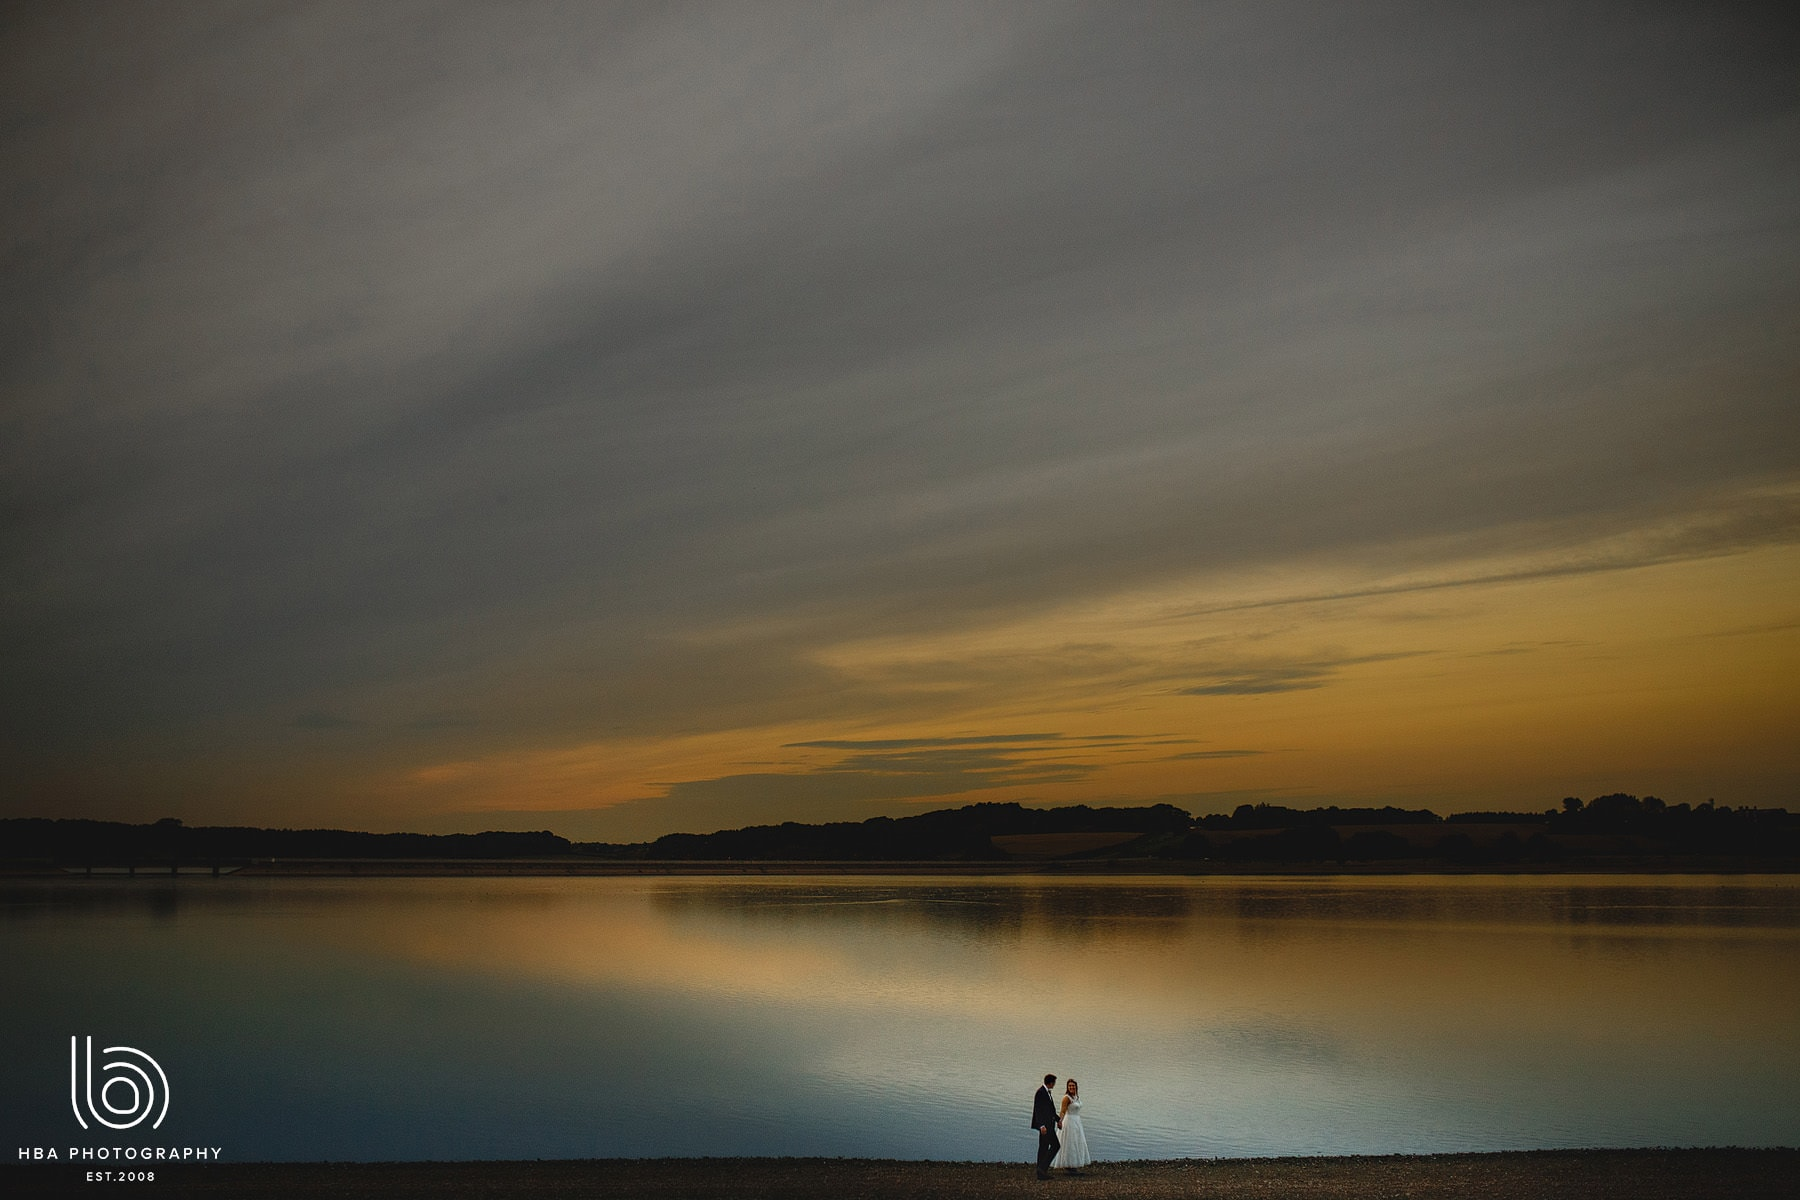 The bride & groom at sunset by the water